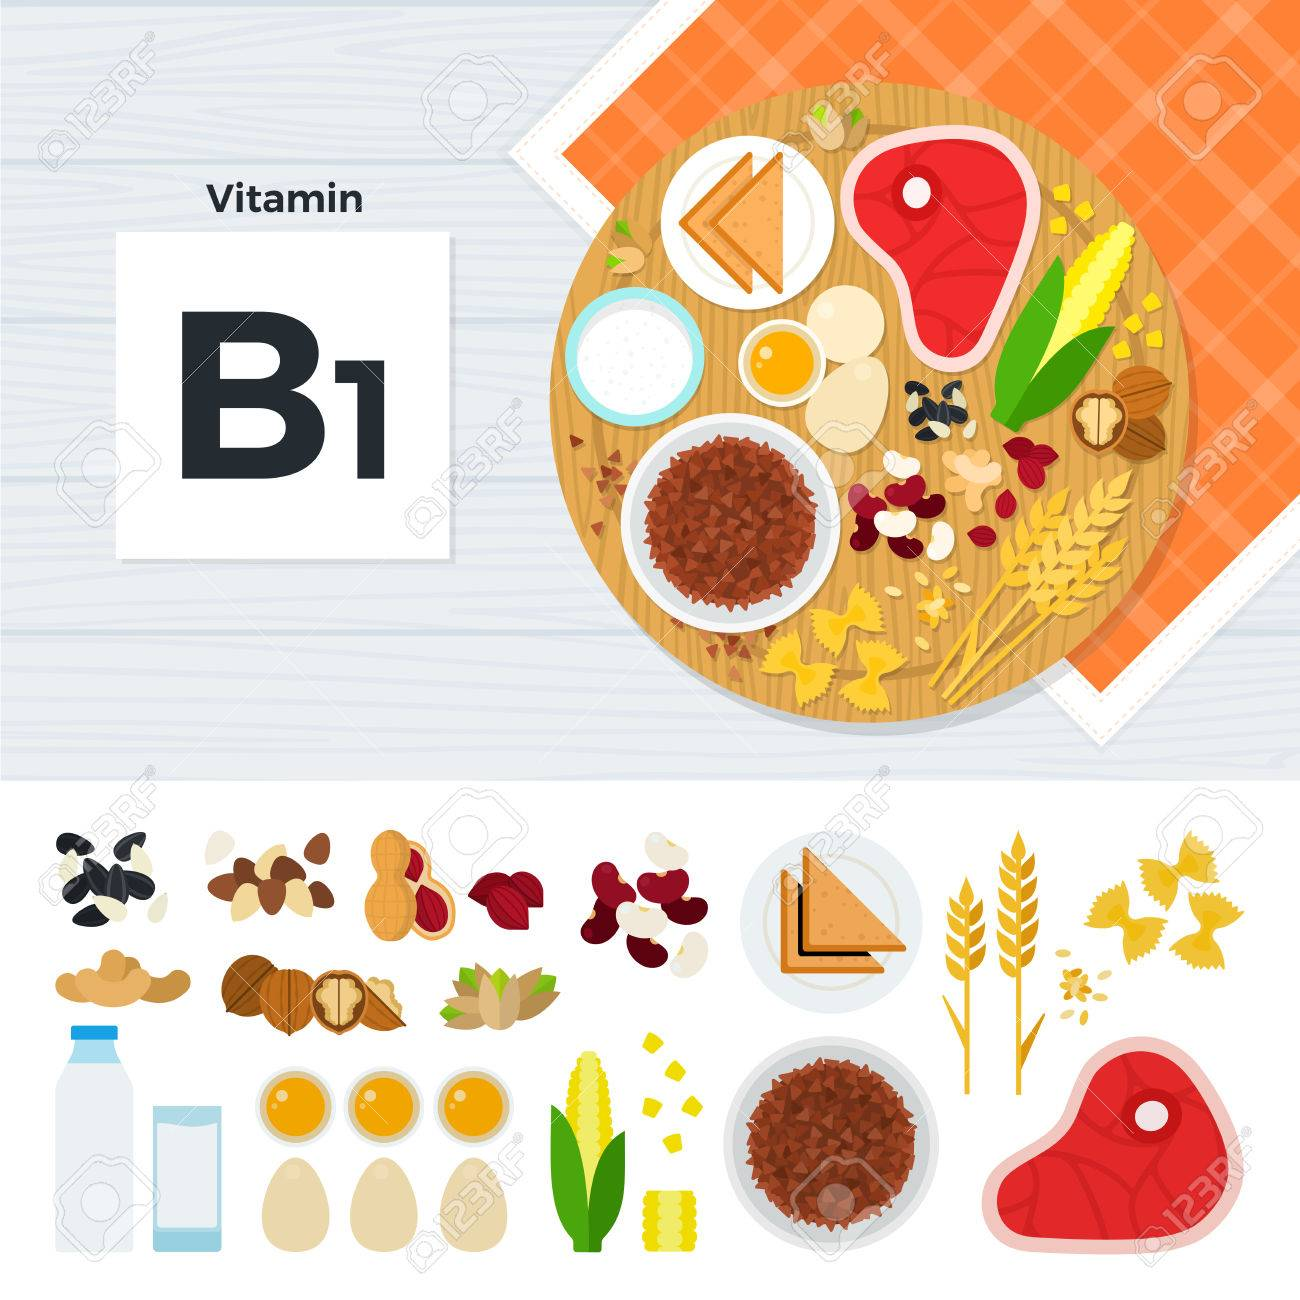 Vitamin b1 flat illustrations foods containing vitamin b1 on the vitamin b1 flat illustrations foods containing vitamin b1 on the table source of vitamin workwithnaturefo